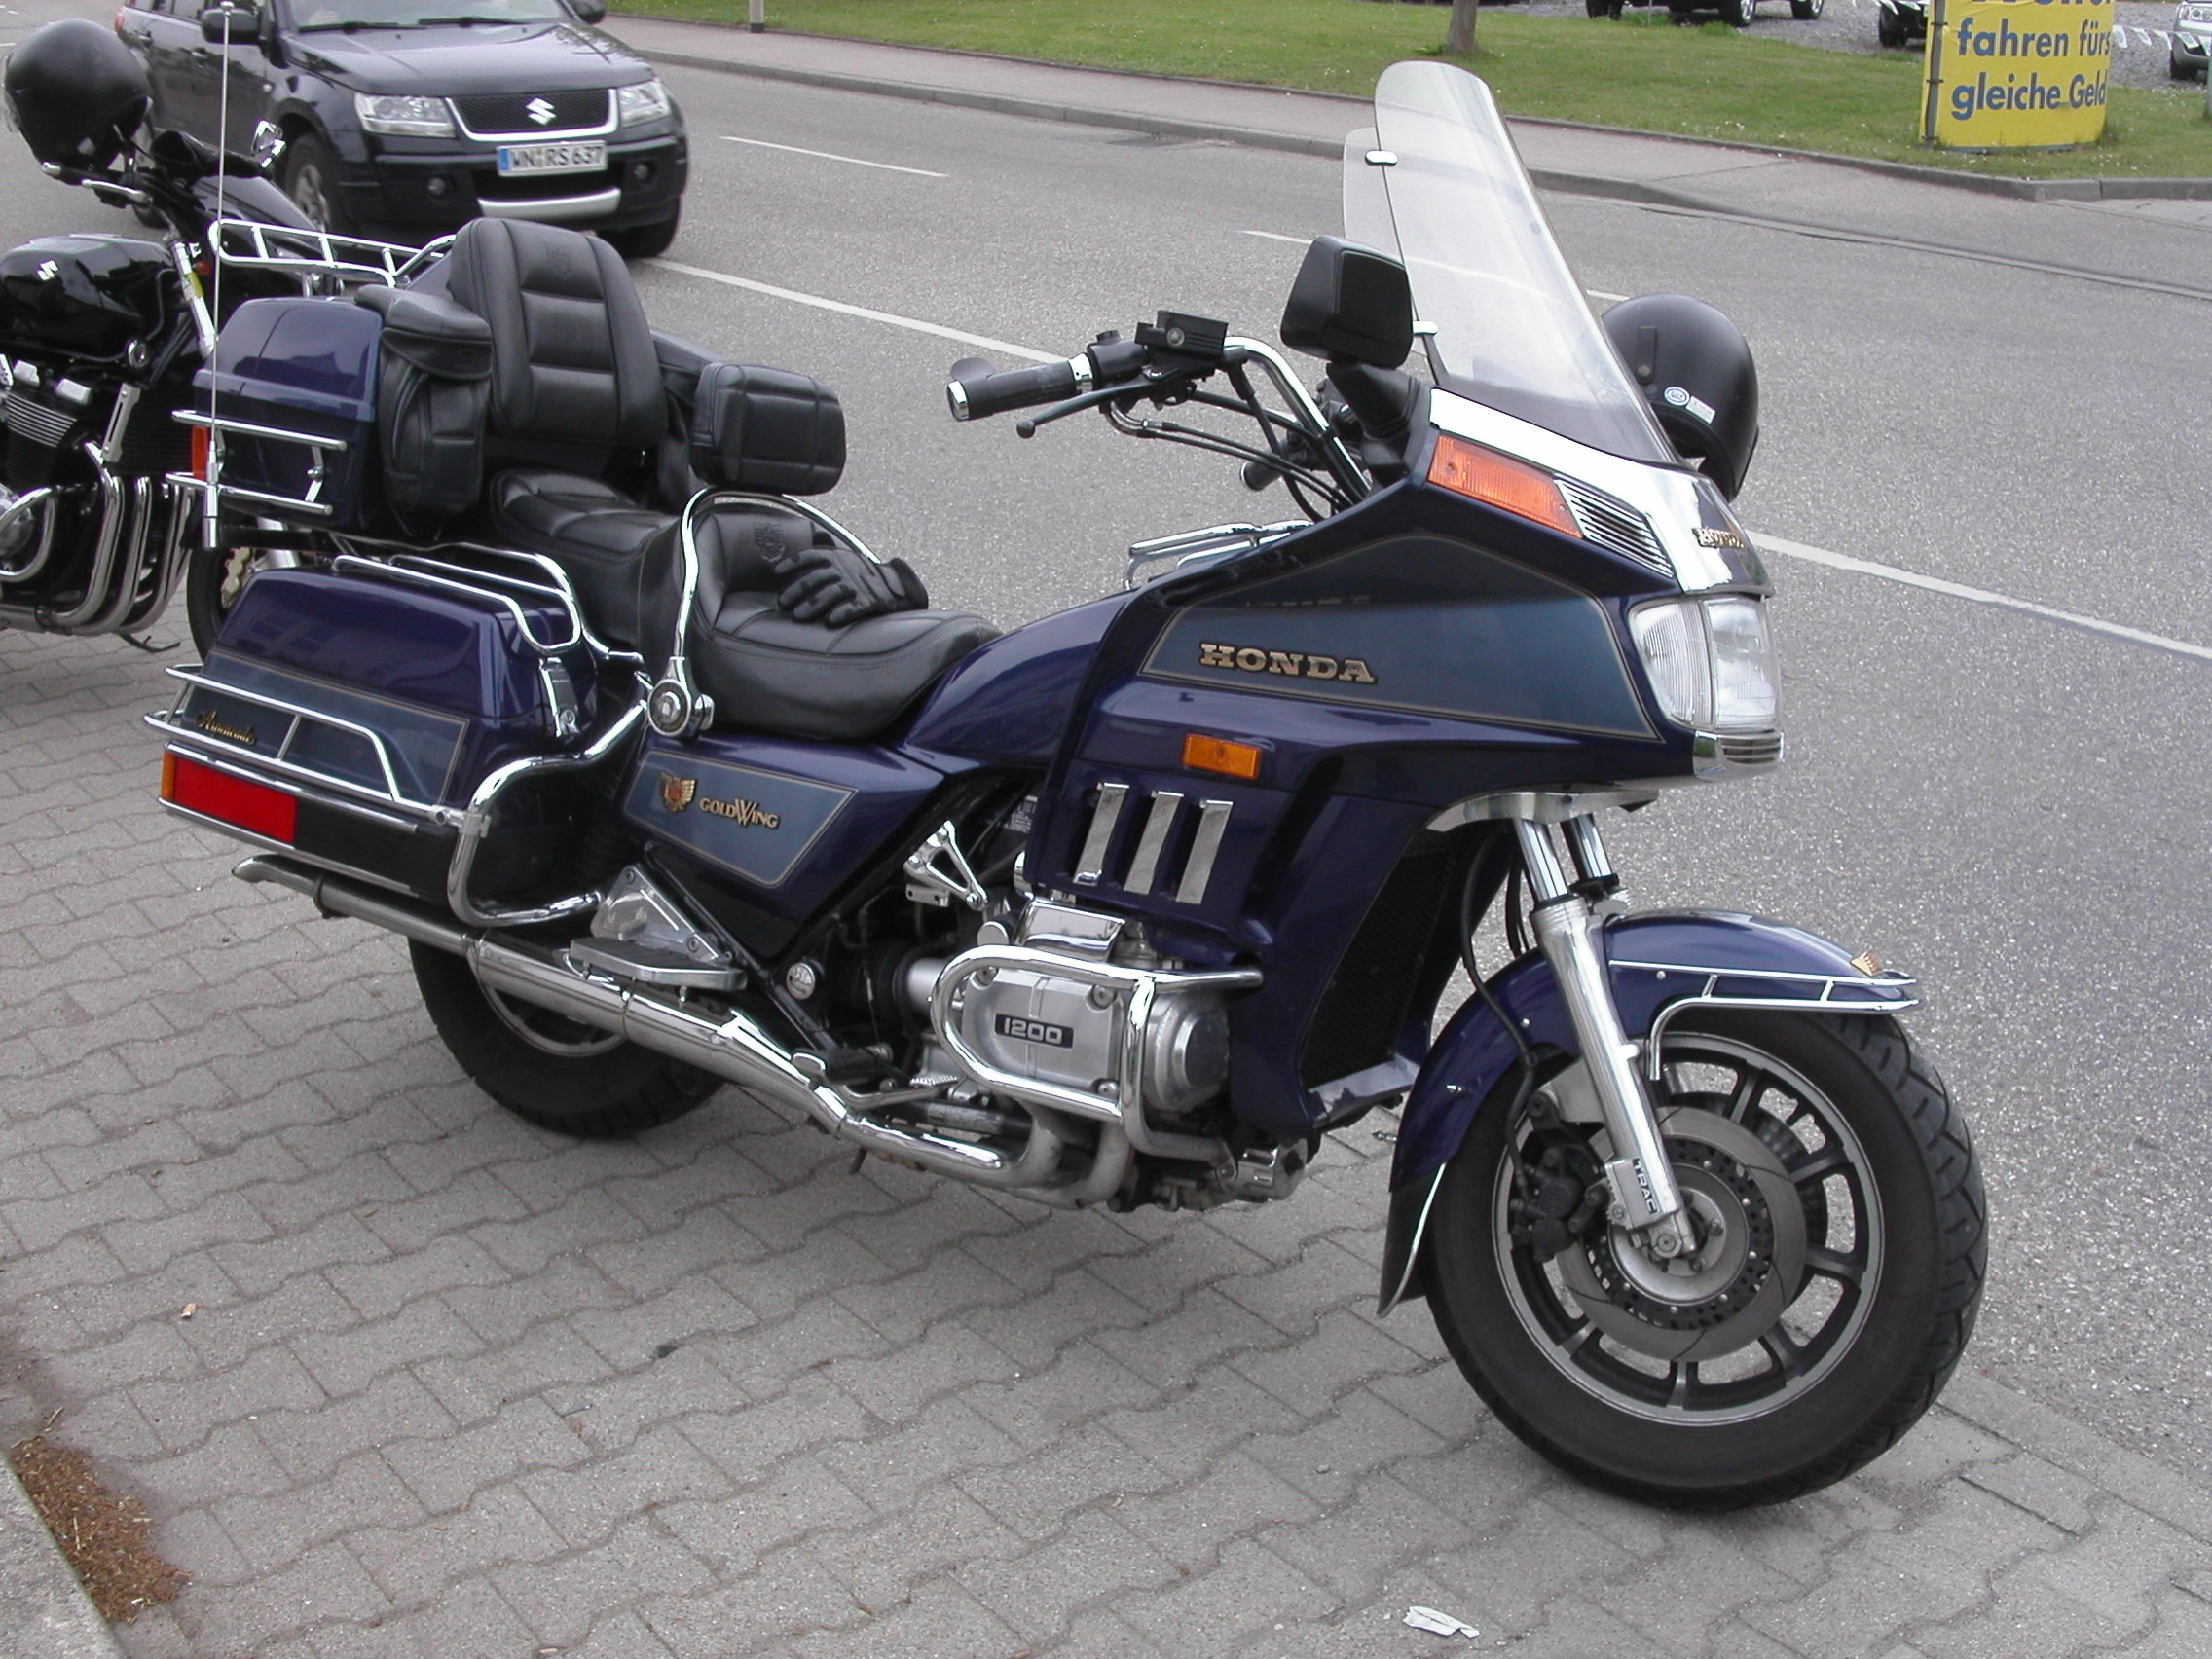 Honda GL1000 Gold Wing 1981 #14